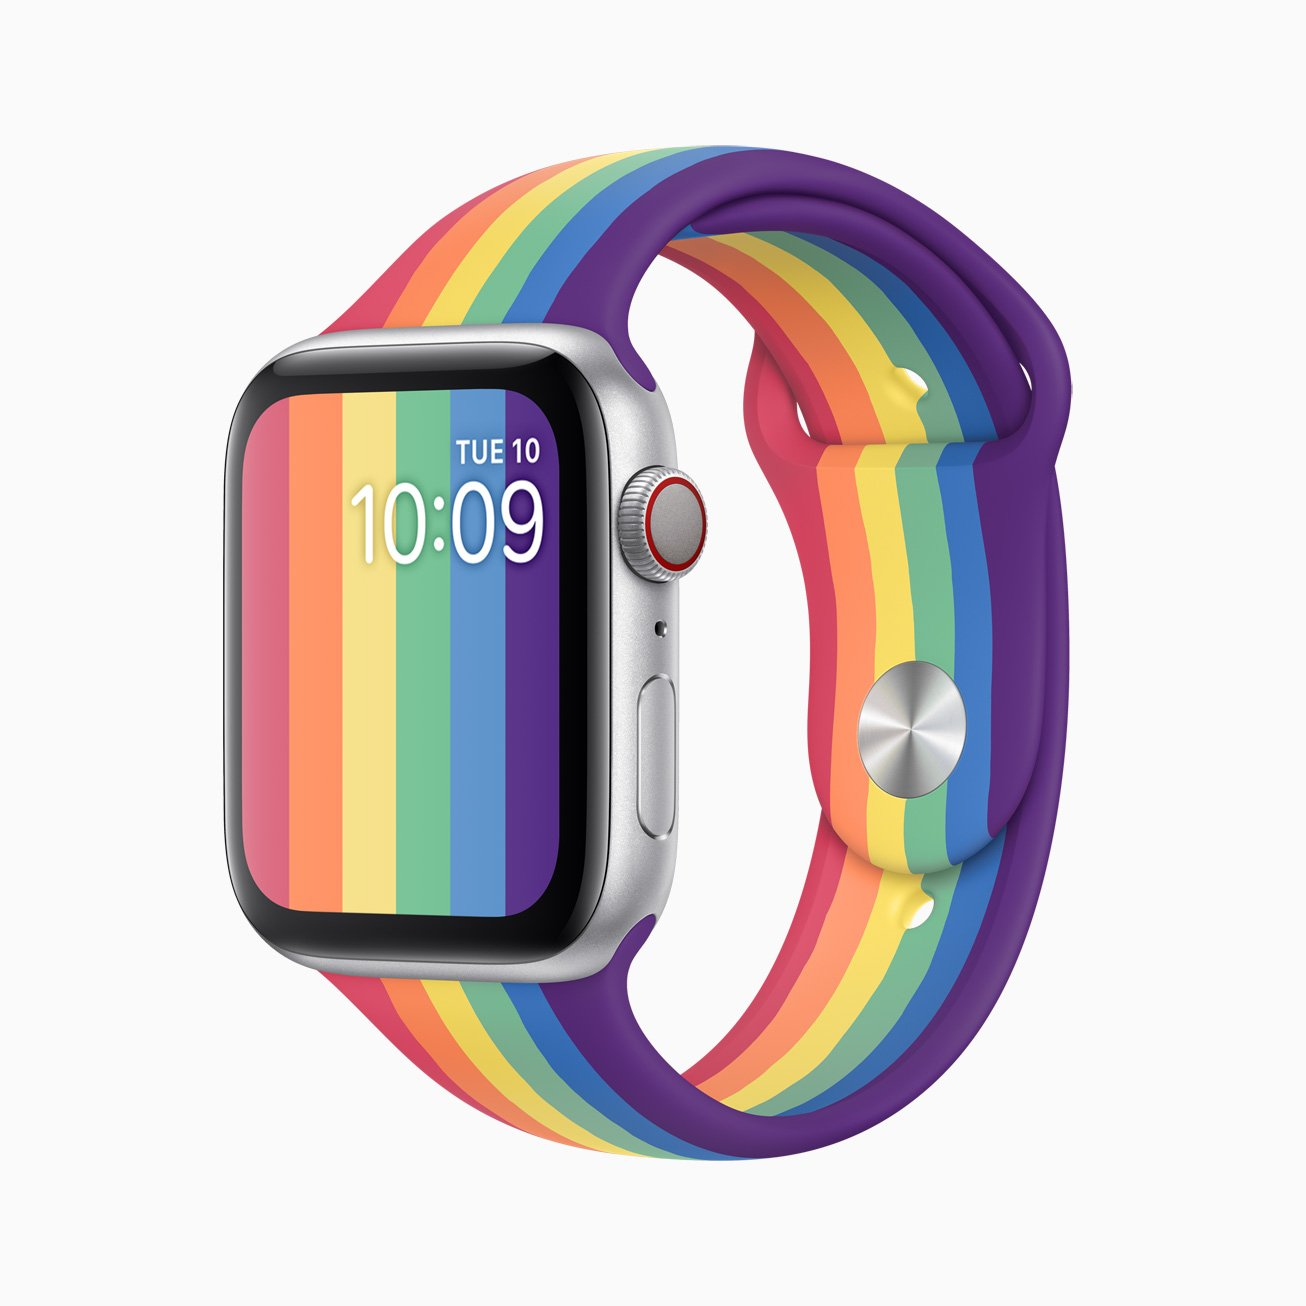 20 Apple_watch_s5-l-almsvr_pride-ss20-watch-pride-edition_05182020_car